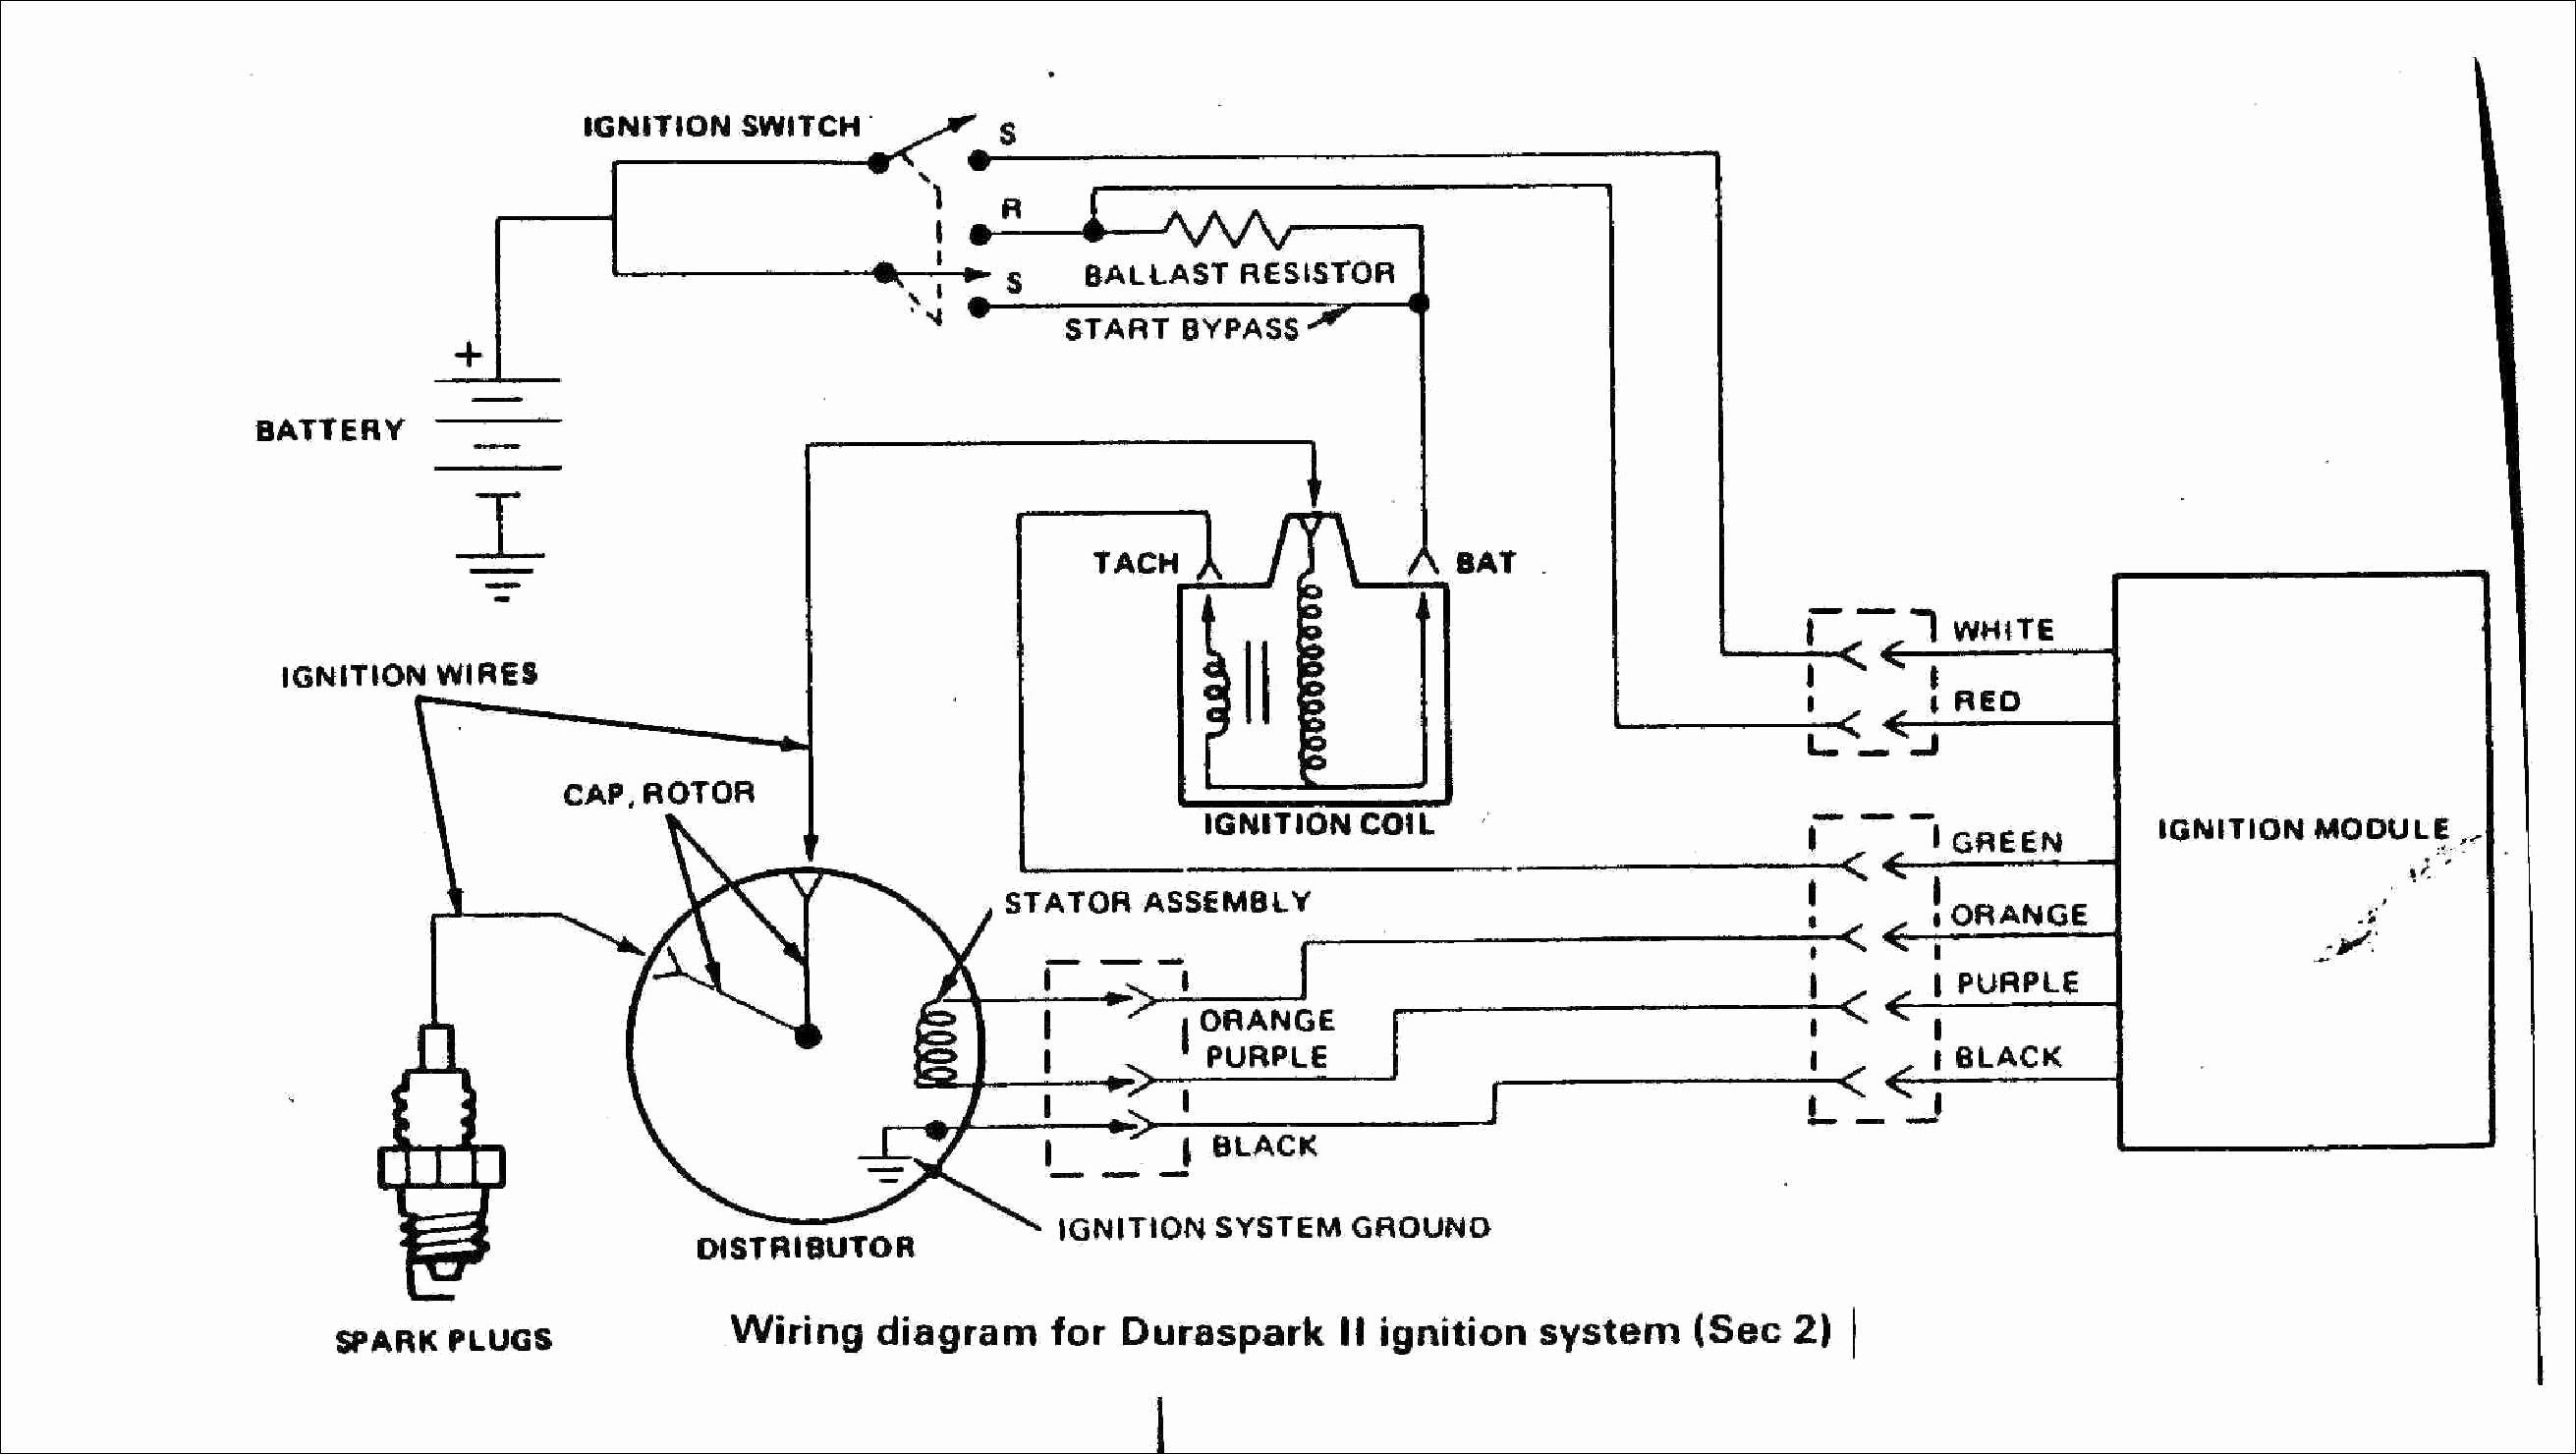 Inspirational Ford Ballast Resistor Wiring Diagram In 2020 Diagram Ignition Coil Wire